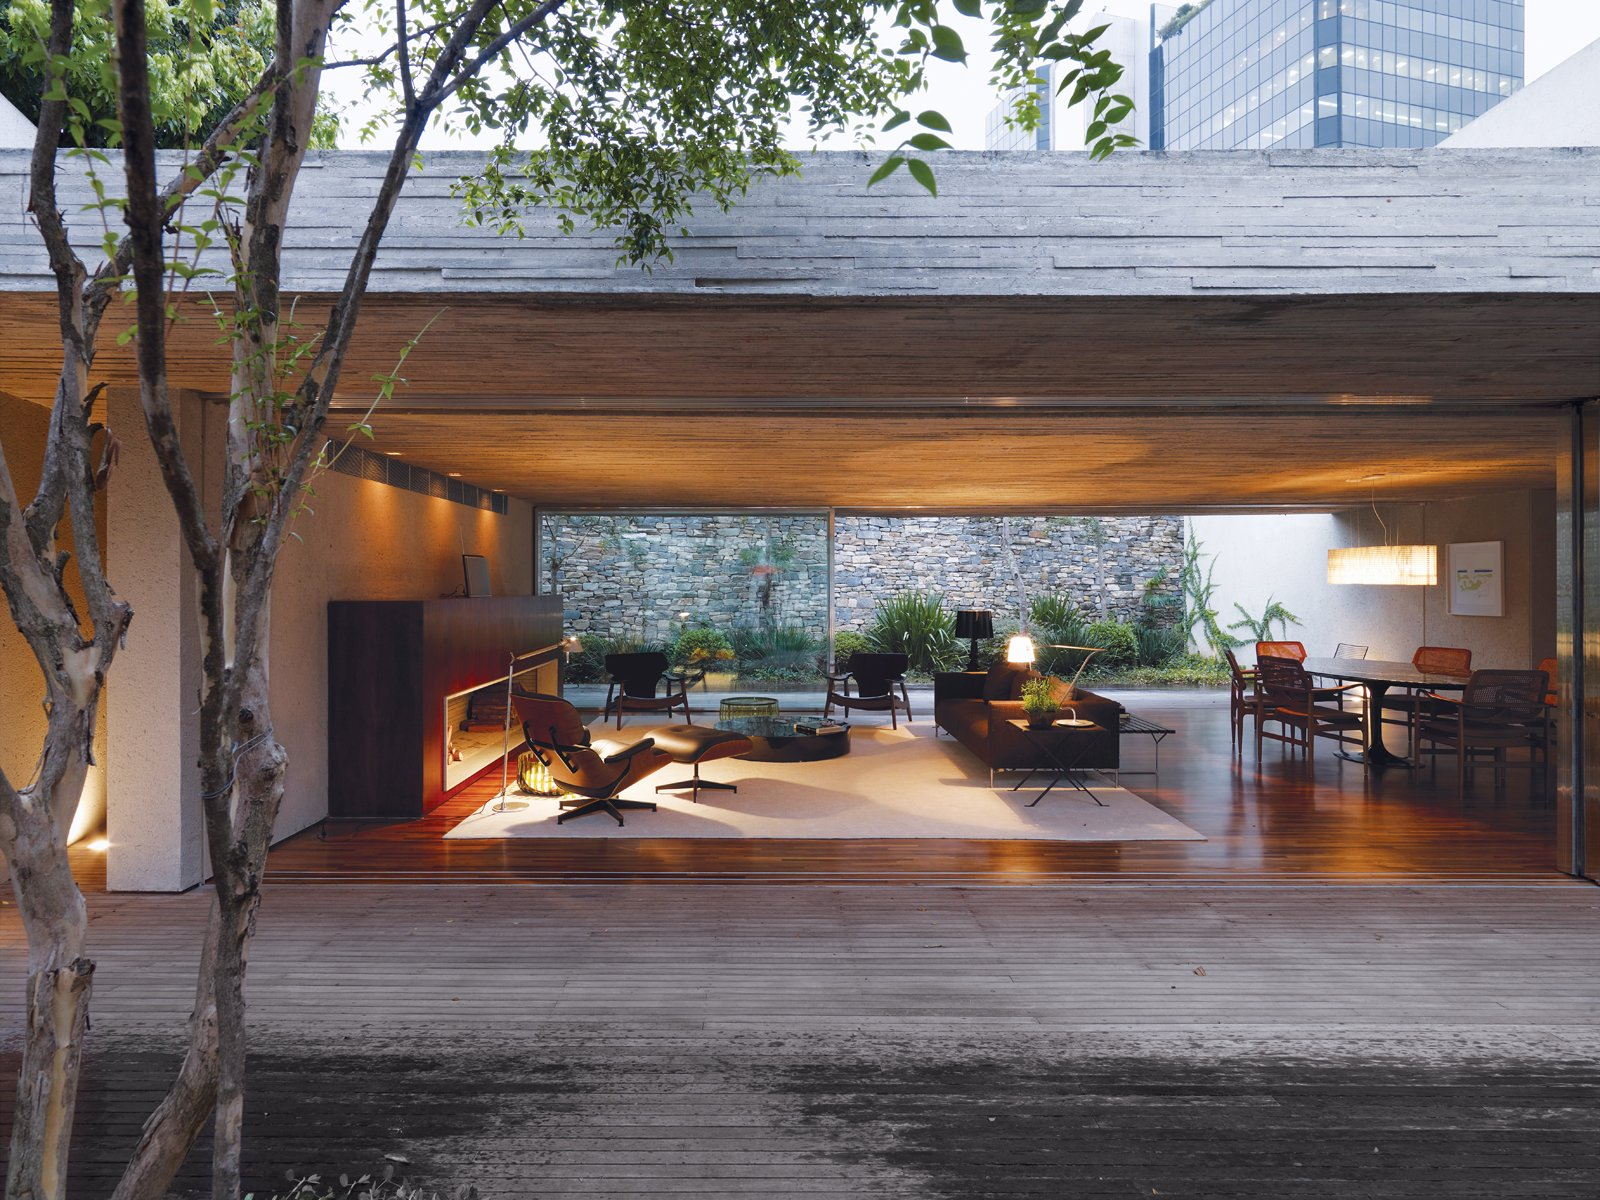 By keeping the front and back gardens at the same elevation as the living area, Kogan created one giant living space. A large overhang means that even on a rainy day, the Cósers can live practically without walls. The dining area is defined by a classic Oval dining table by Eero Saarinen for Knoll. Brazilian master designer Sergio Rodrigues did the matching pair of armchairs in the living room.  Homes Blending Indoor and Outdoor Living Space by Megan Hamaker from São Paulo, Brazil